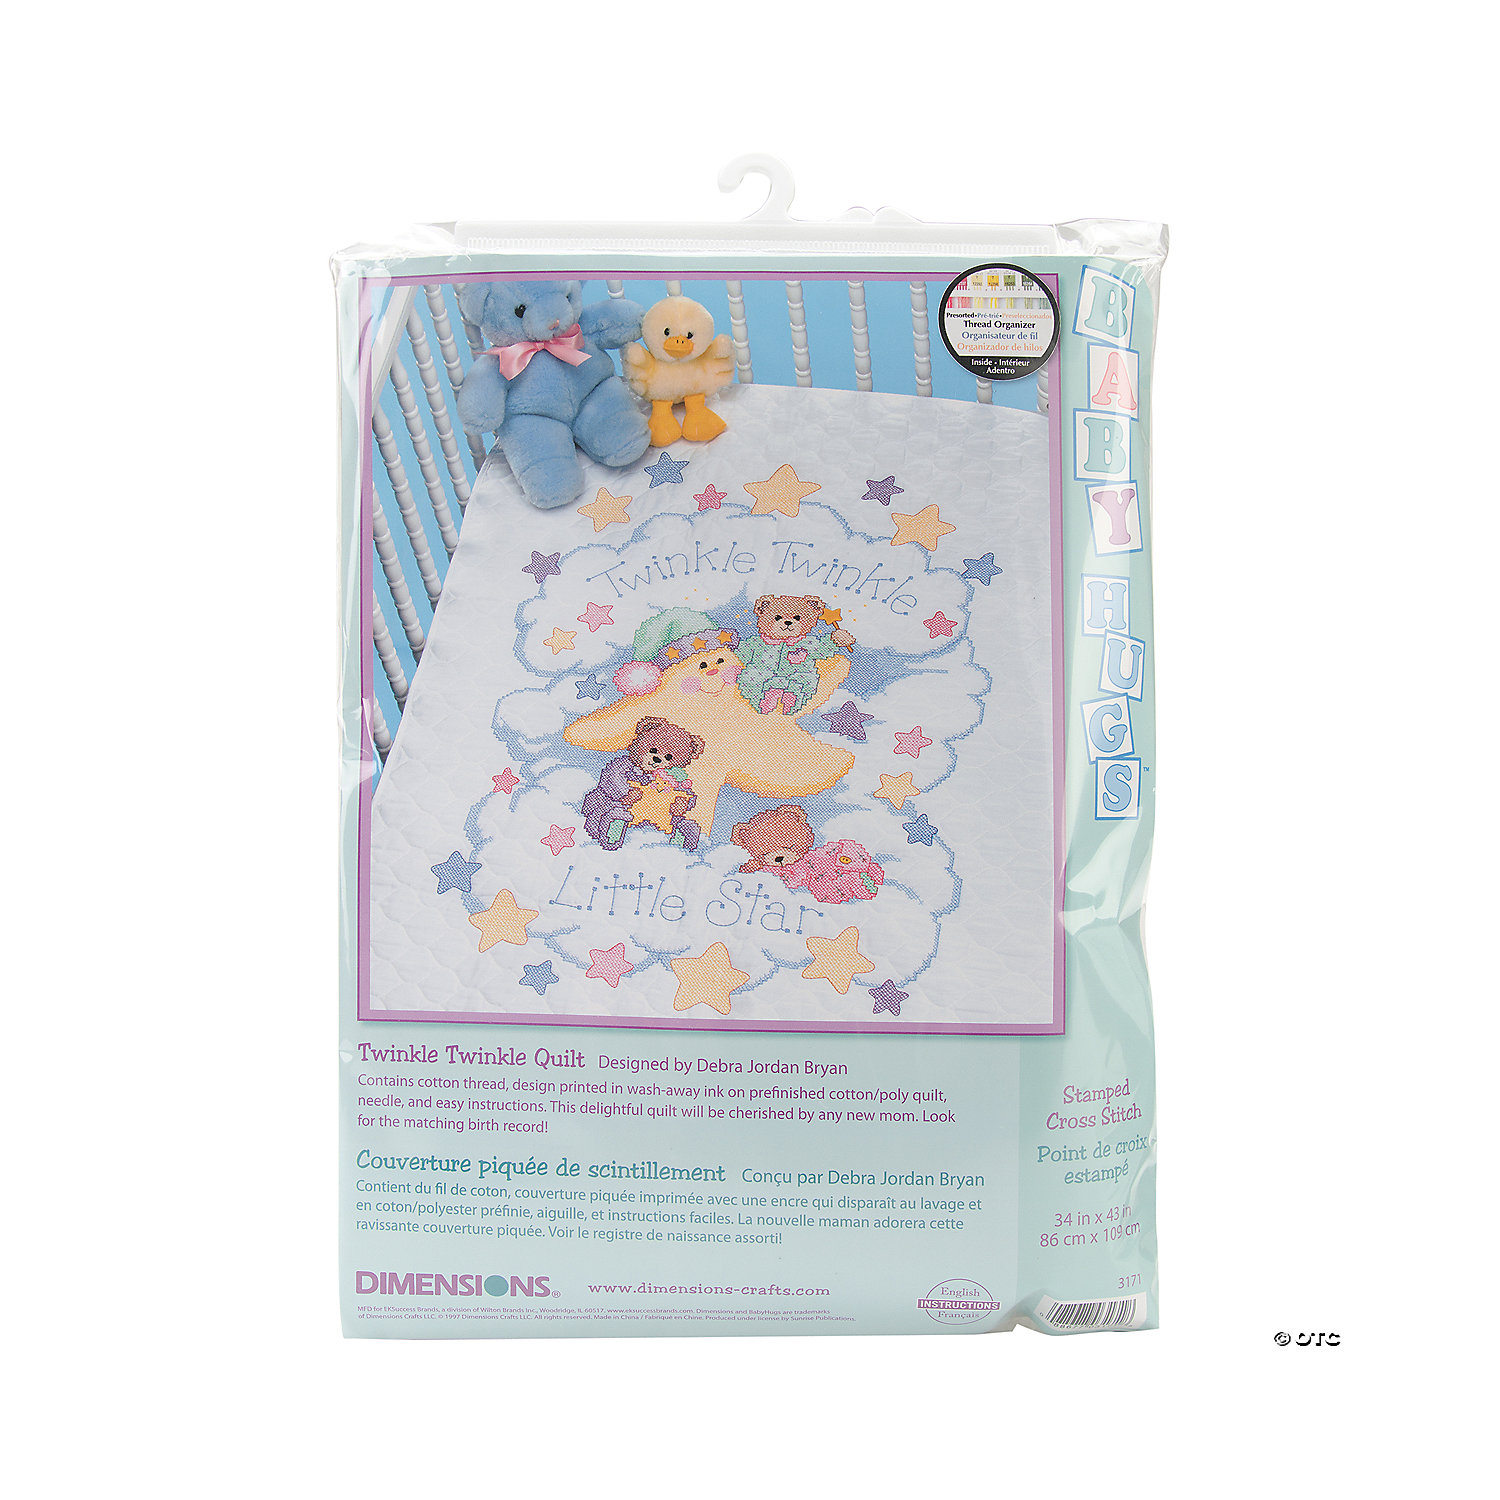 Dimensions-Baby Quilt Stamped Criss Stitch Kit - Twinkle Twinkle